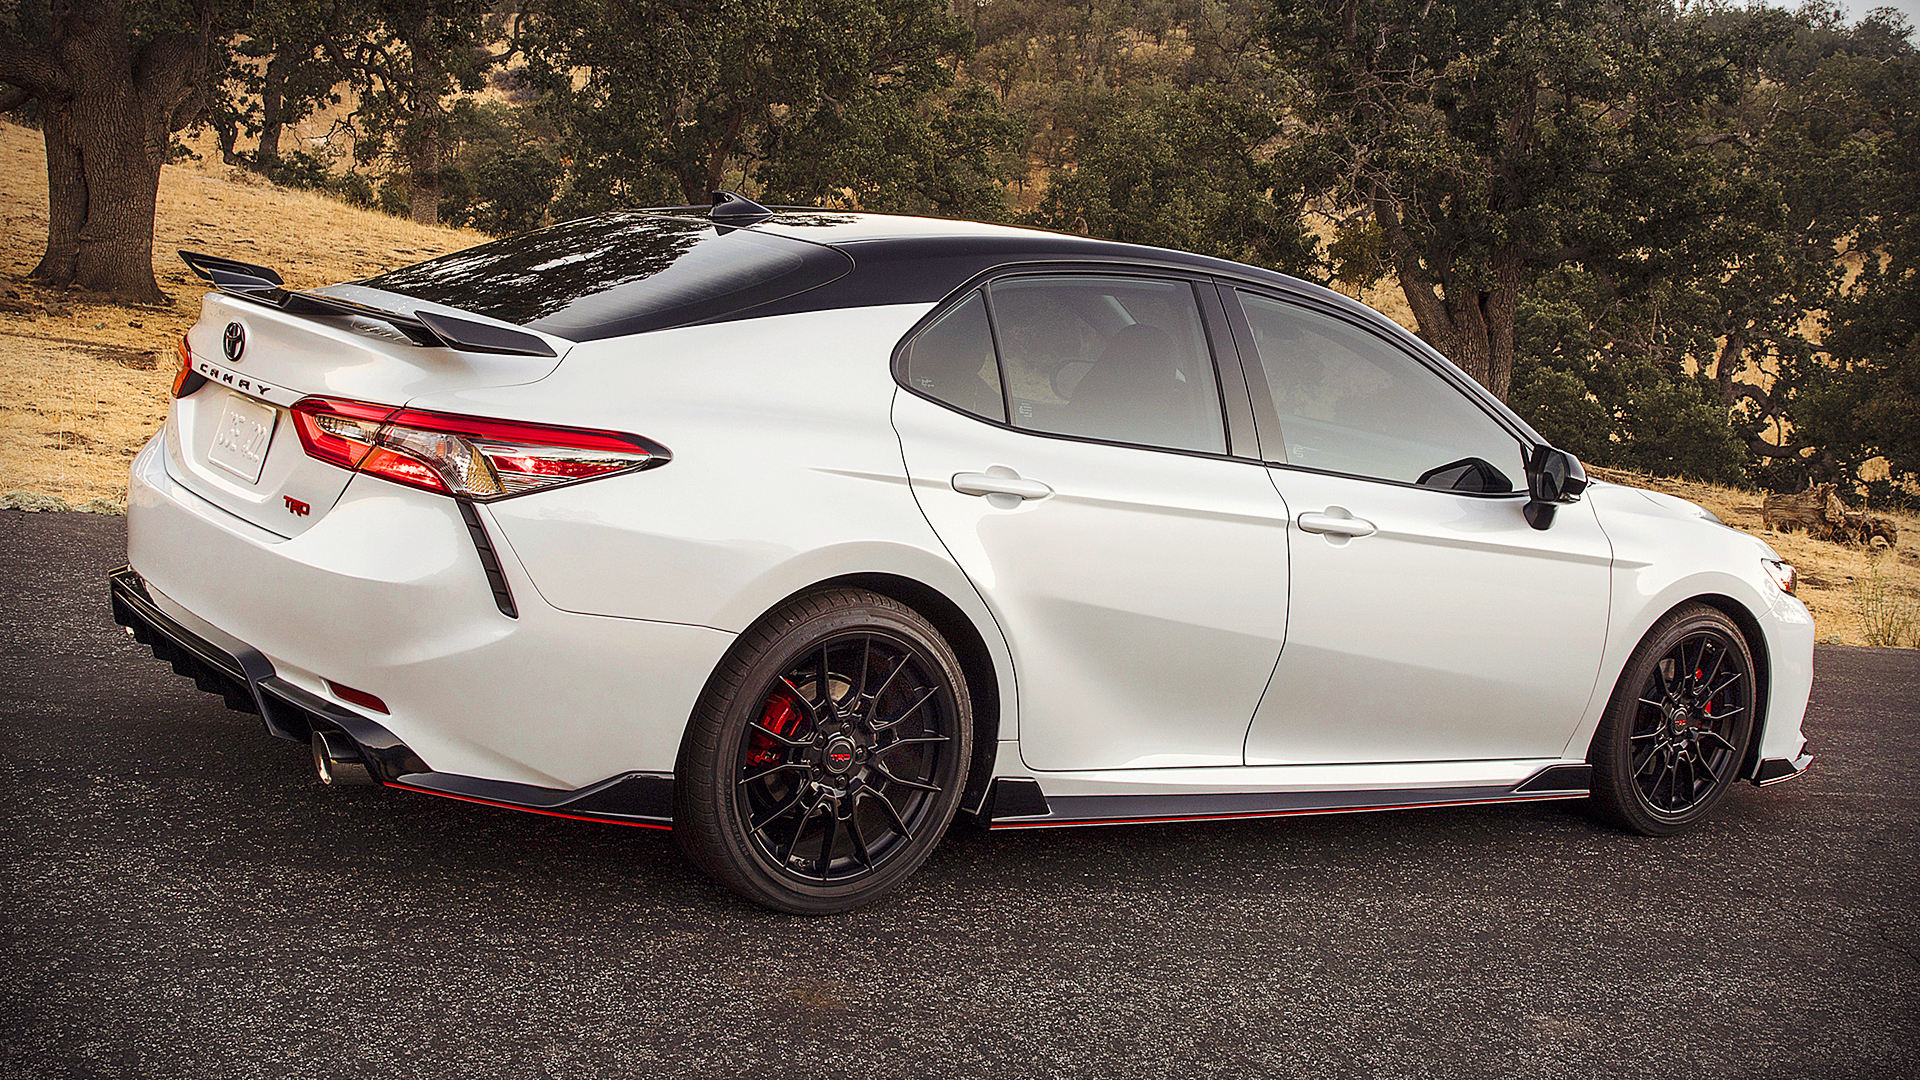 2020 Toyota Camry TRD White Images